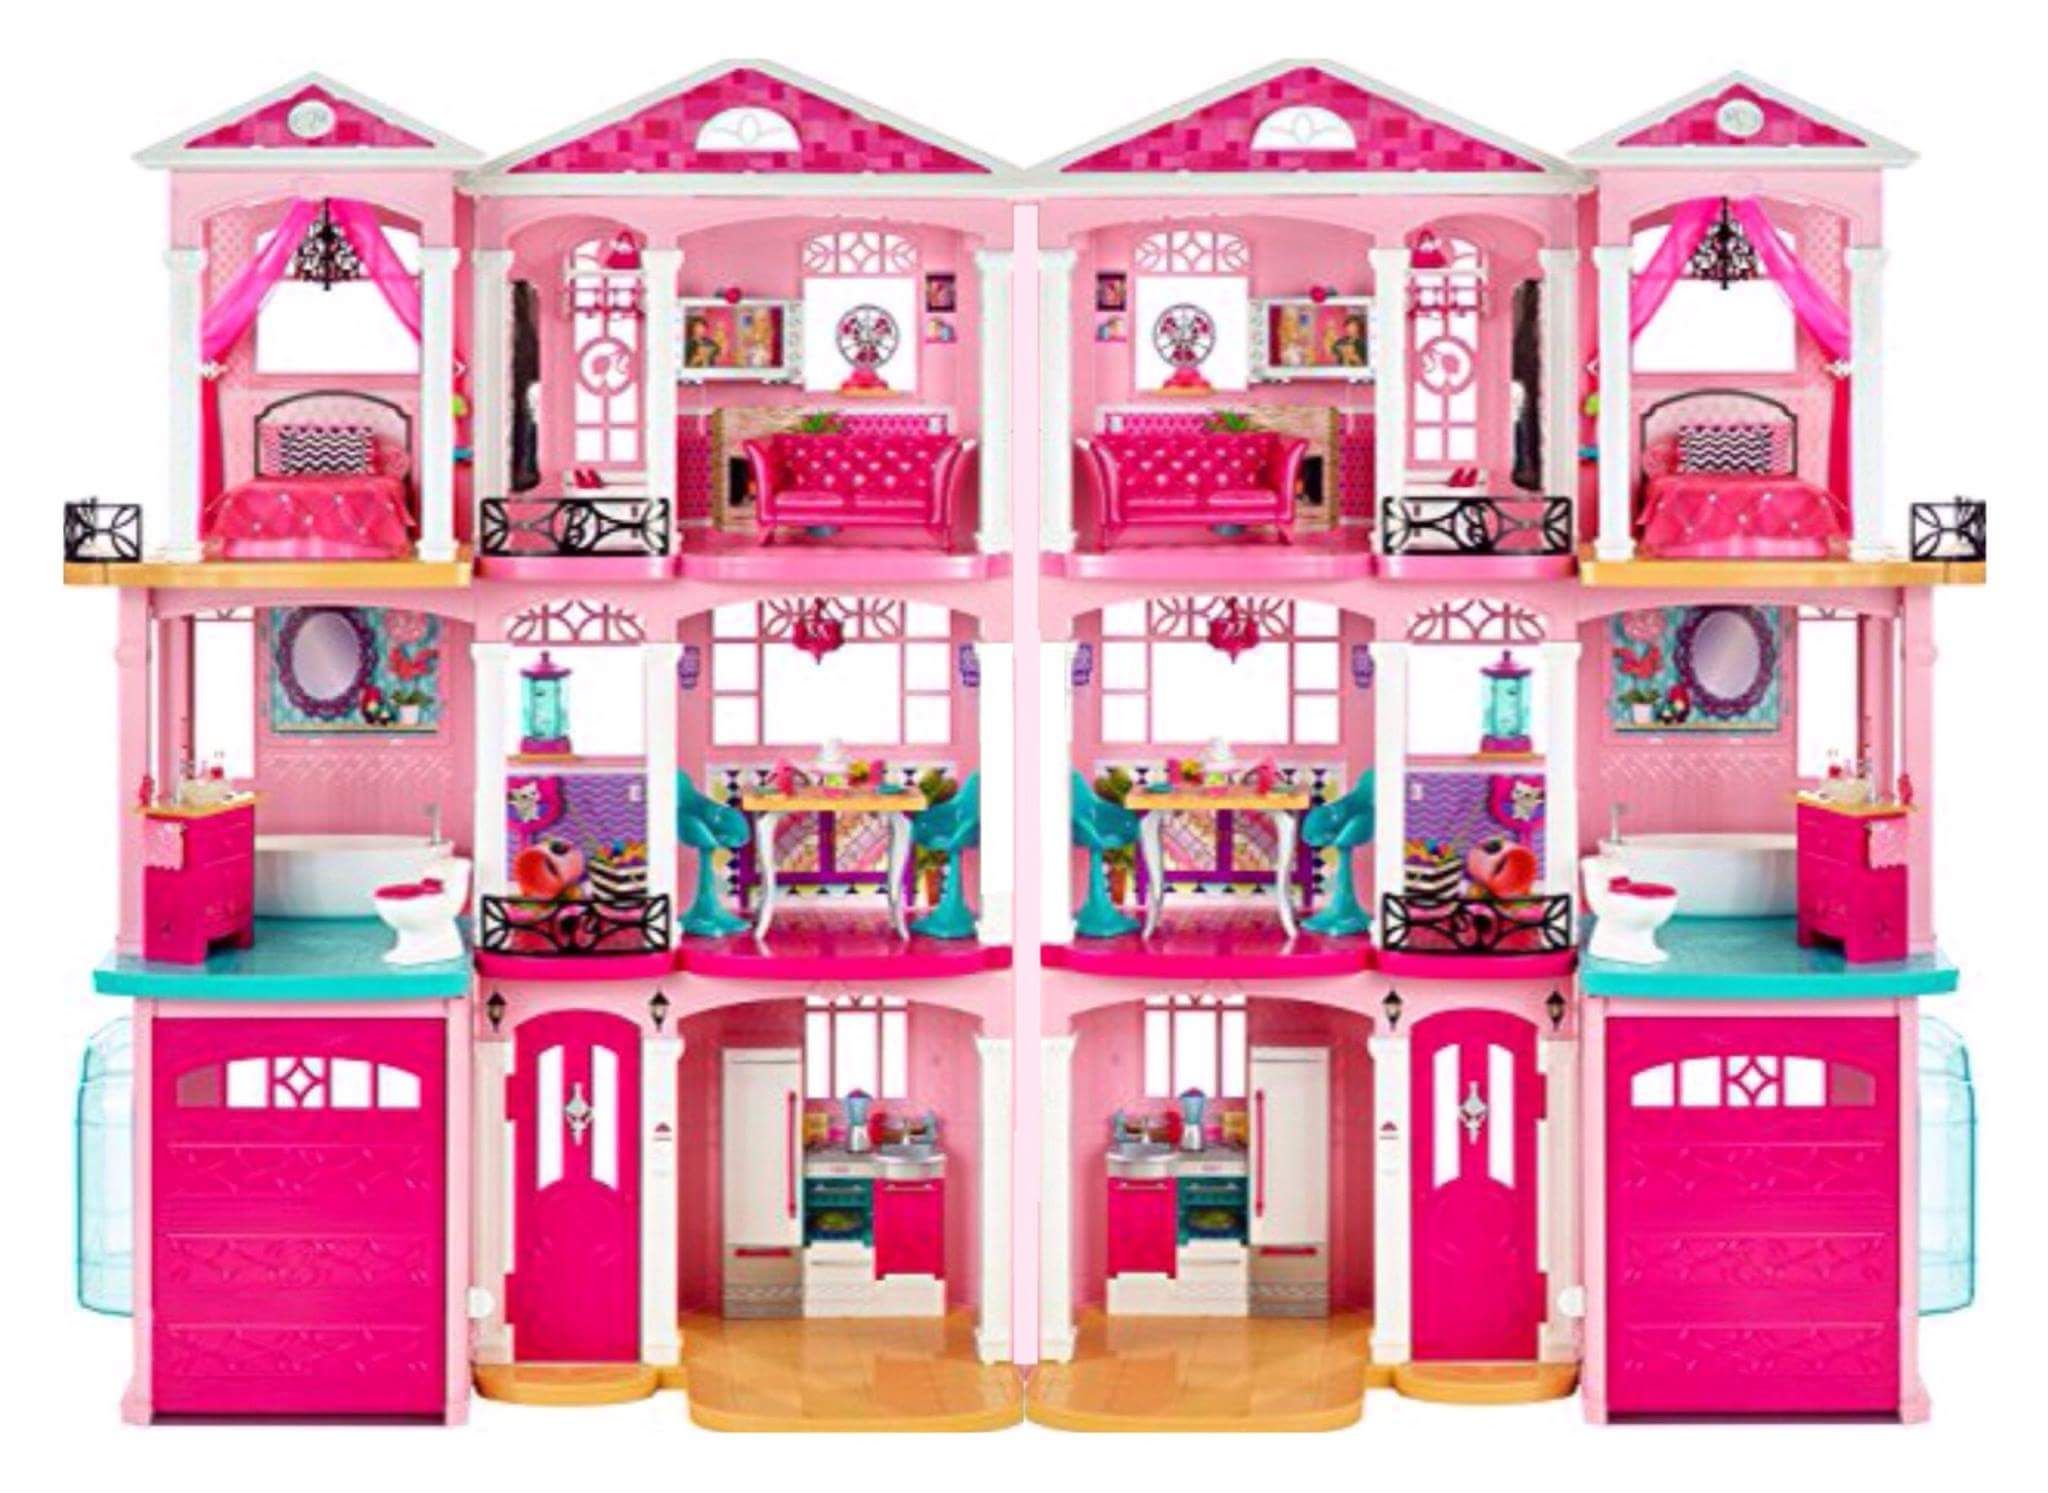 Modified Barbie Dream House 2 Barbie Dream Homes Connected Together Ideas Link Takes You Nowhere Barbie Doll House Barbie Dream House Barbie Doll Set